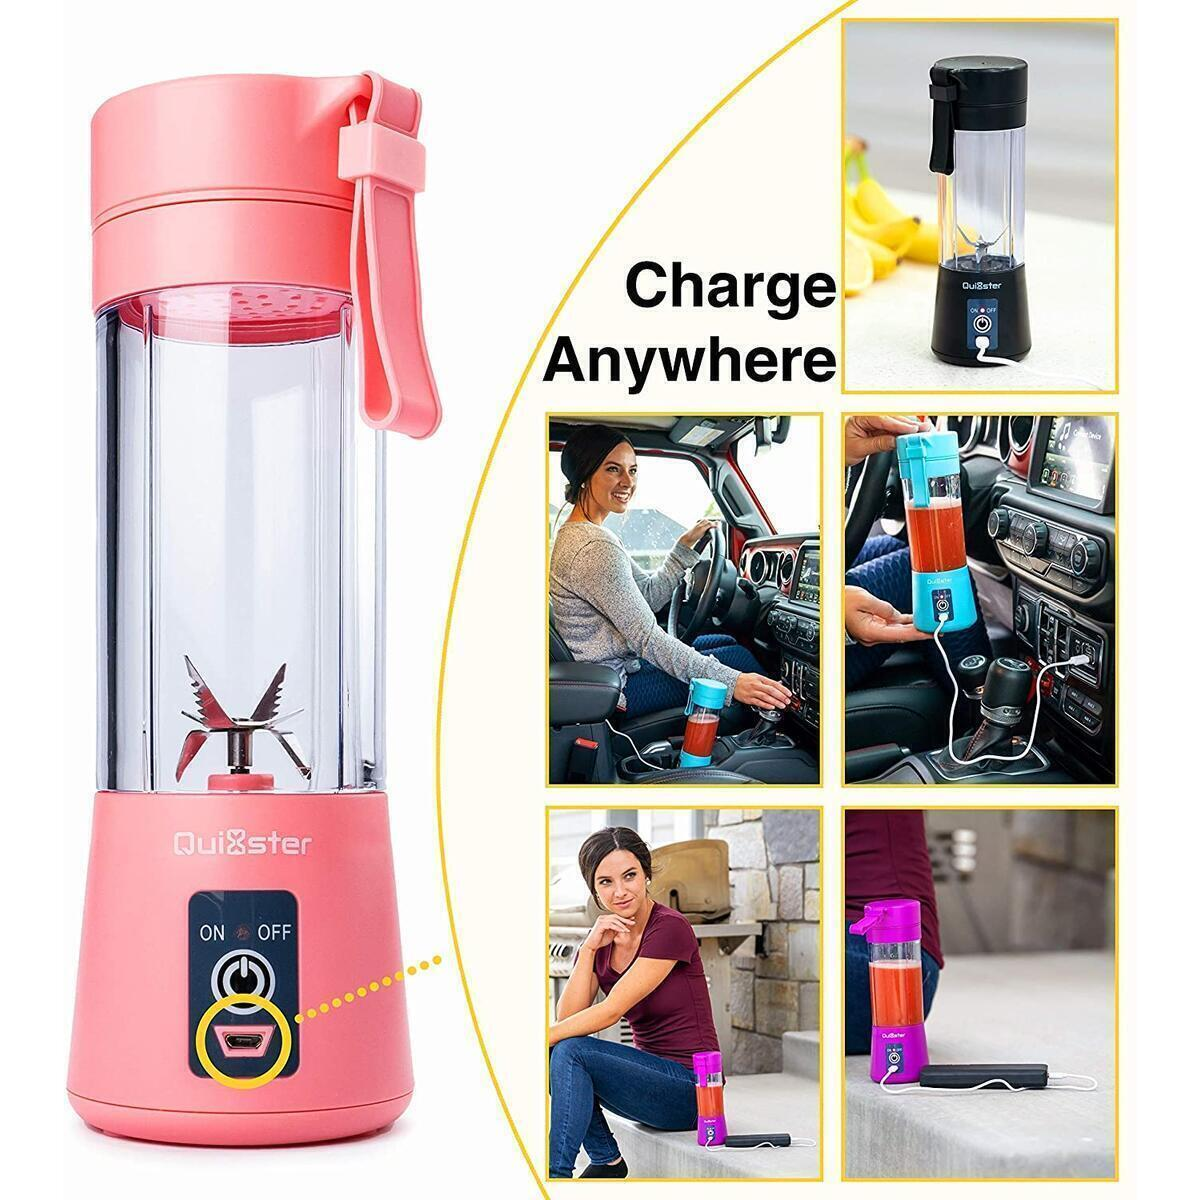 Quixster Portable Blender for Shakes and Smoothies. Personal Size Blender for Shakes and Smoothies with Mini Juice Blender. USB Rechargeable Travel Juicer including 50 Smoothie Recipes (Green)